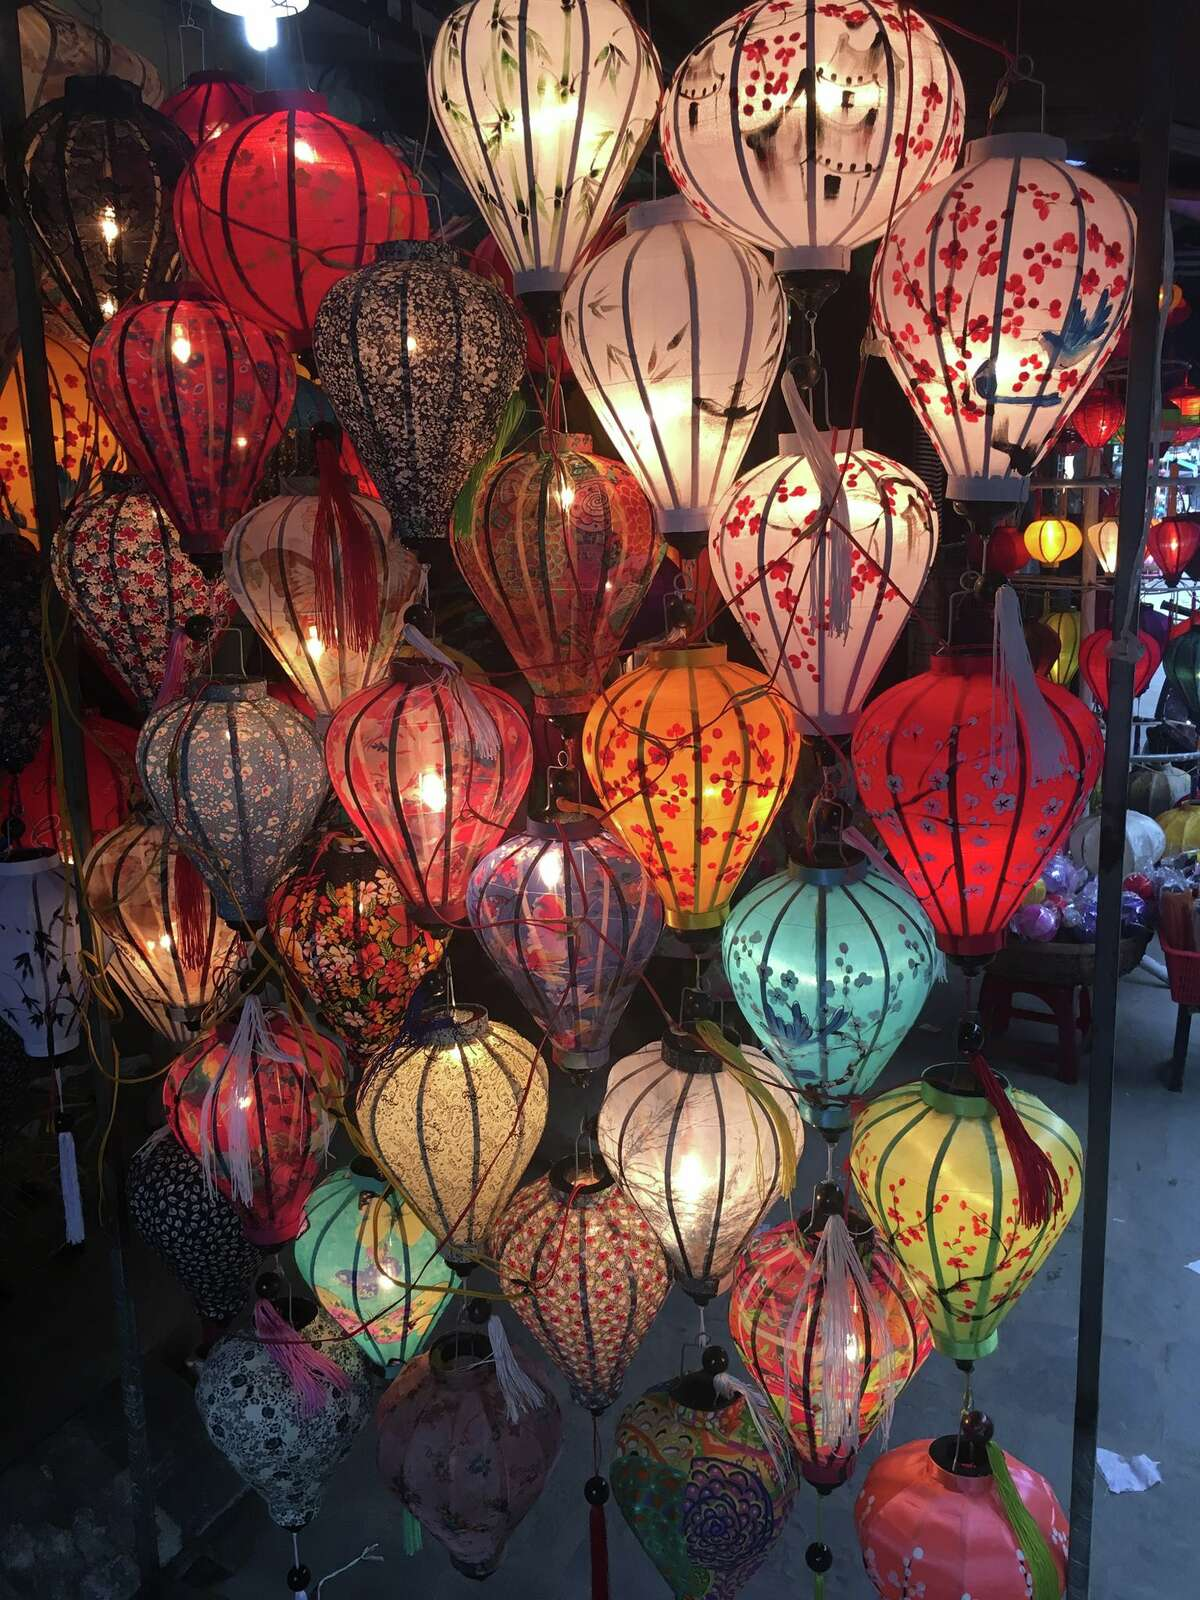 Lisa Ermak said: The simple things in life like these beautiful silk lanterns that remind me how thankful I am to have visited Vietnam